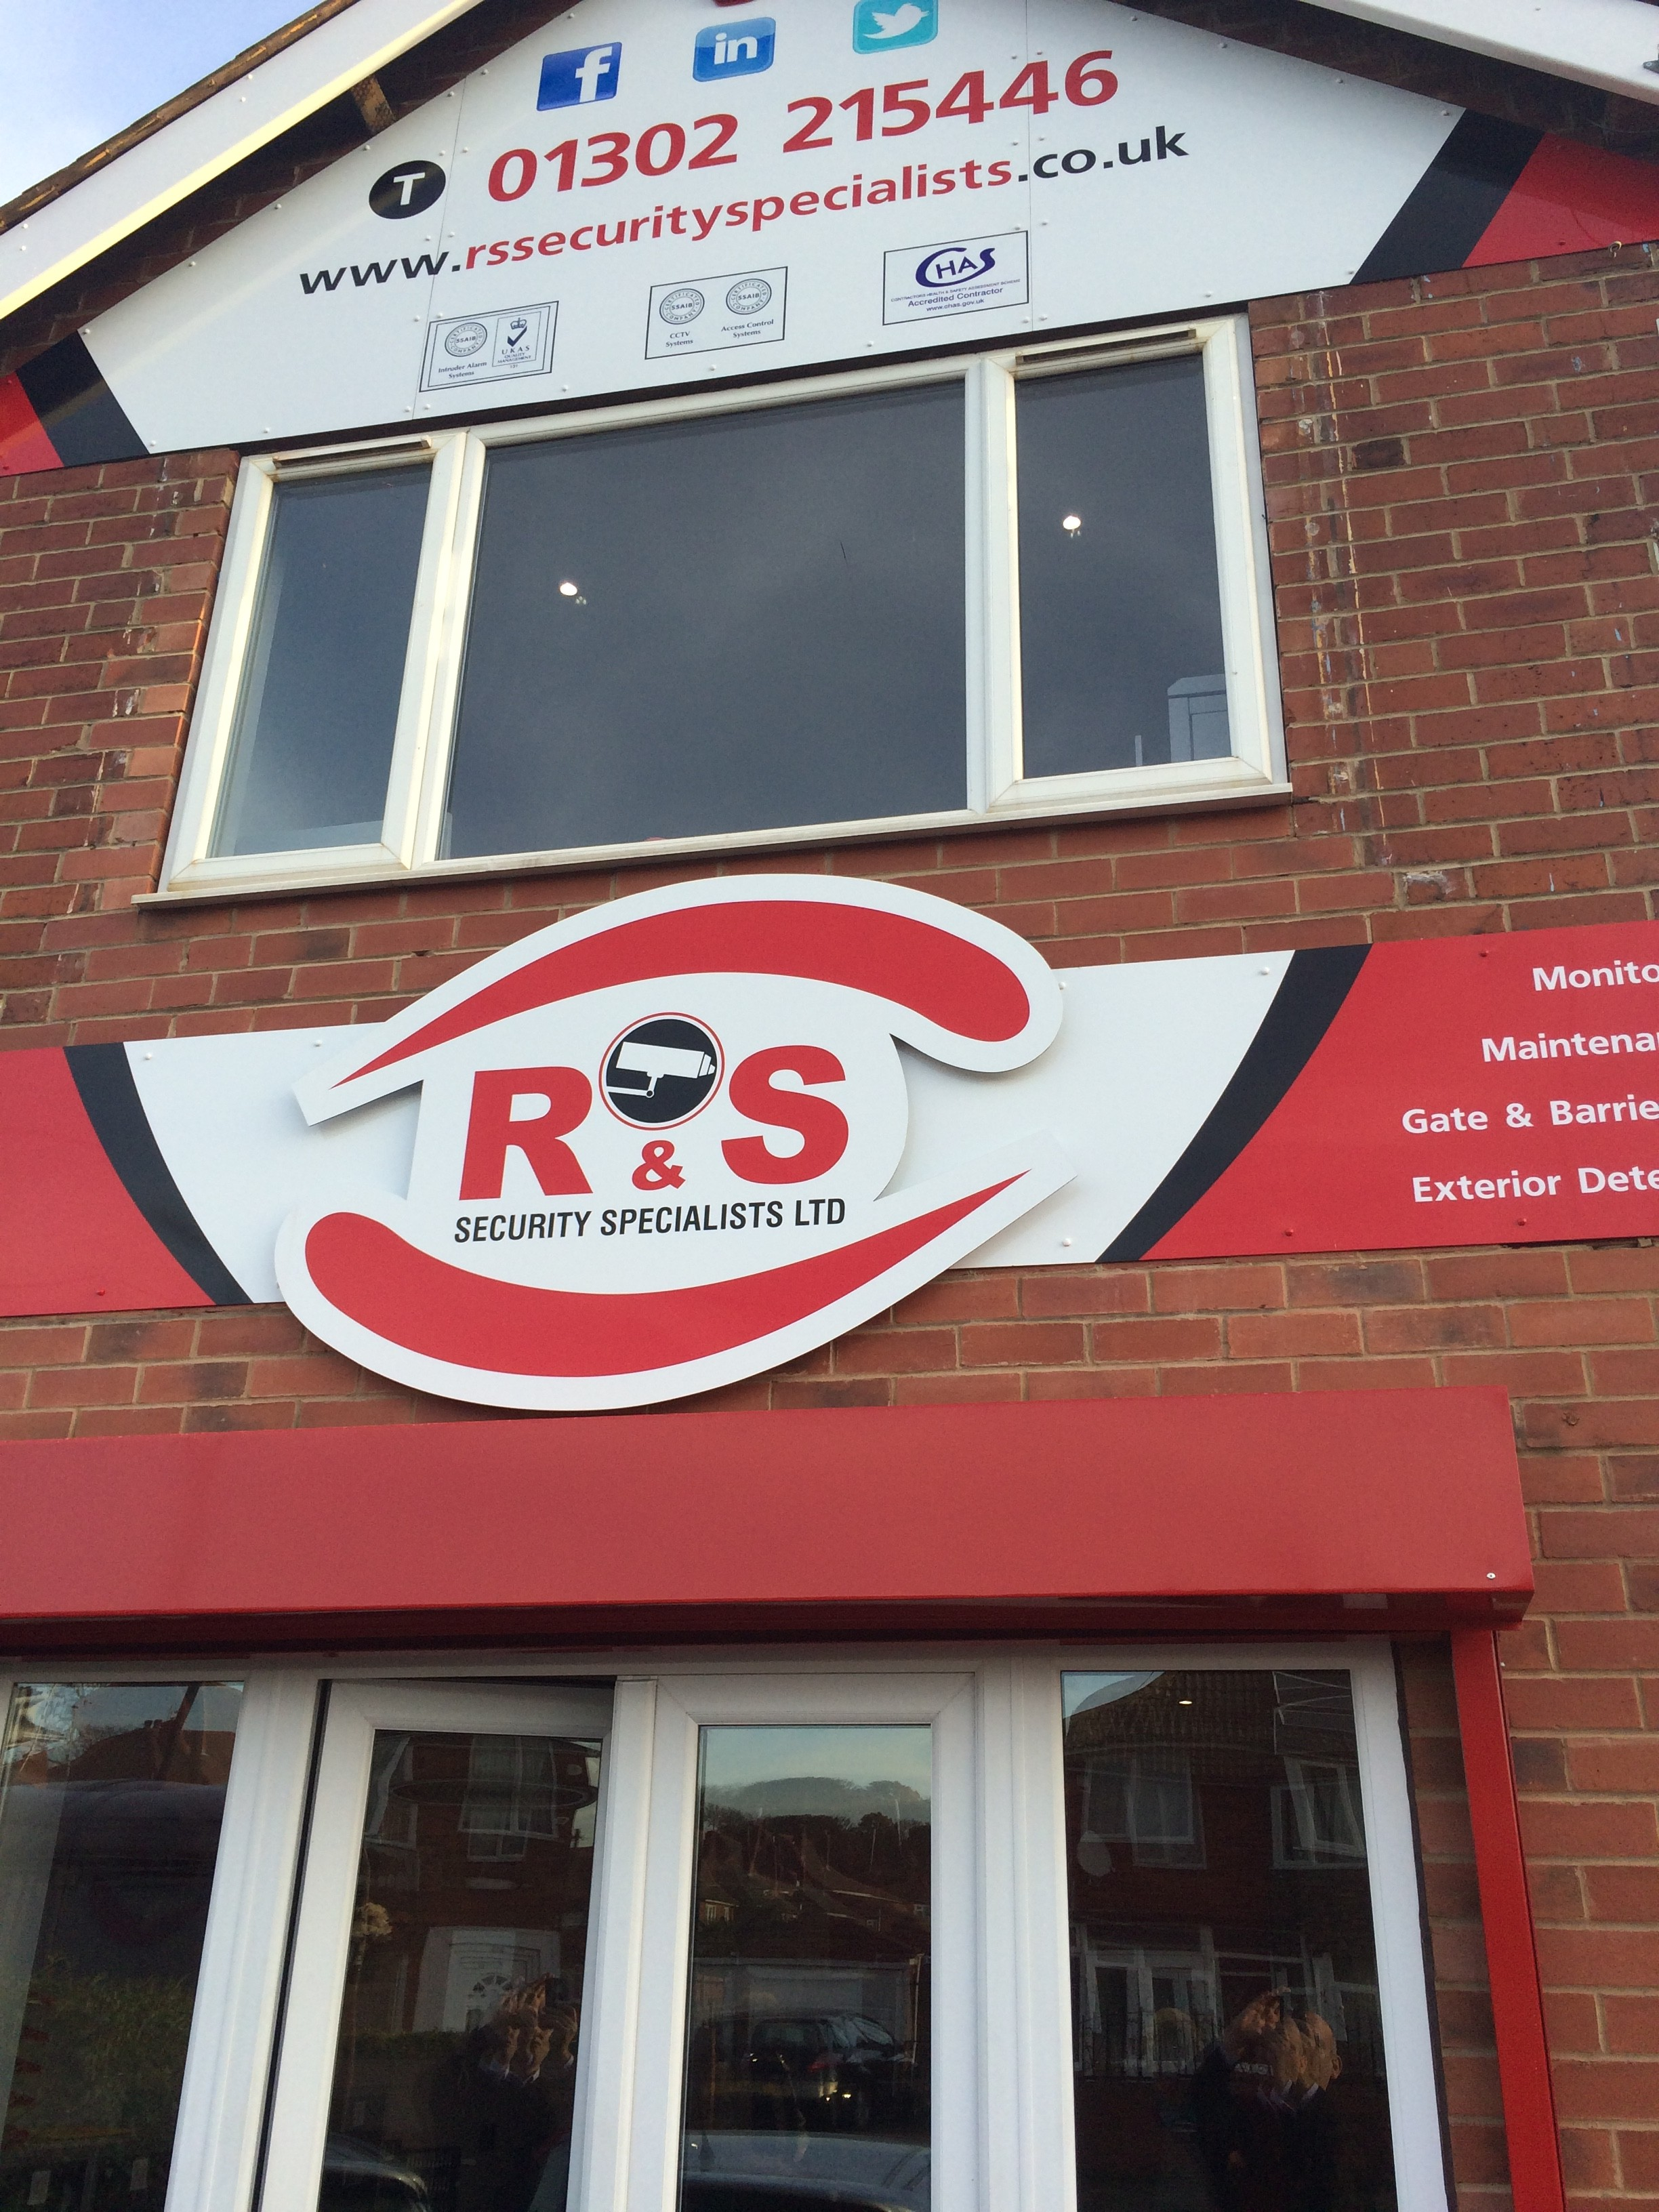 R&S Security Specialists in Doncaster